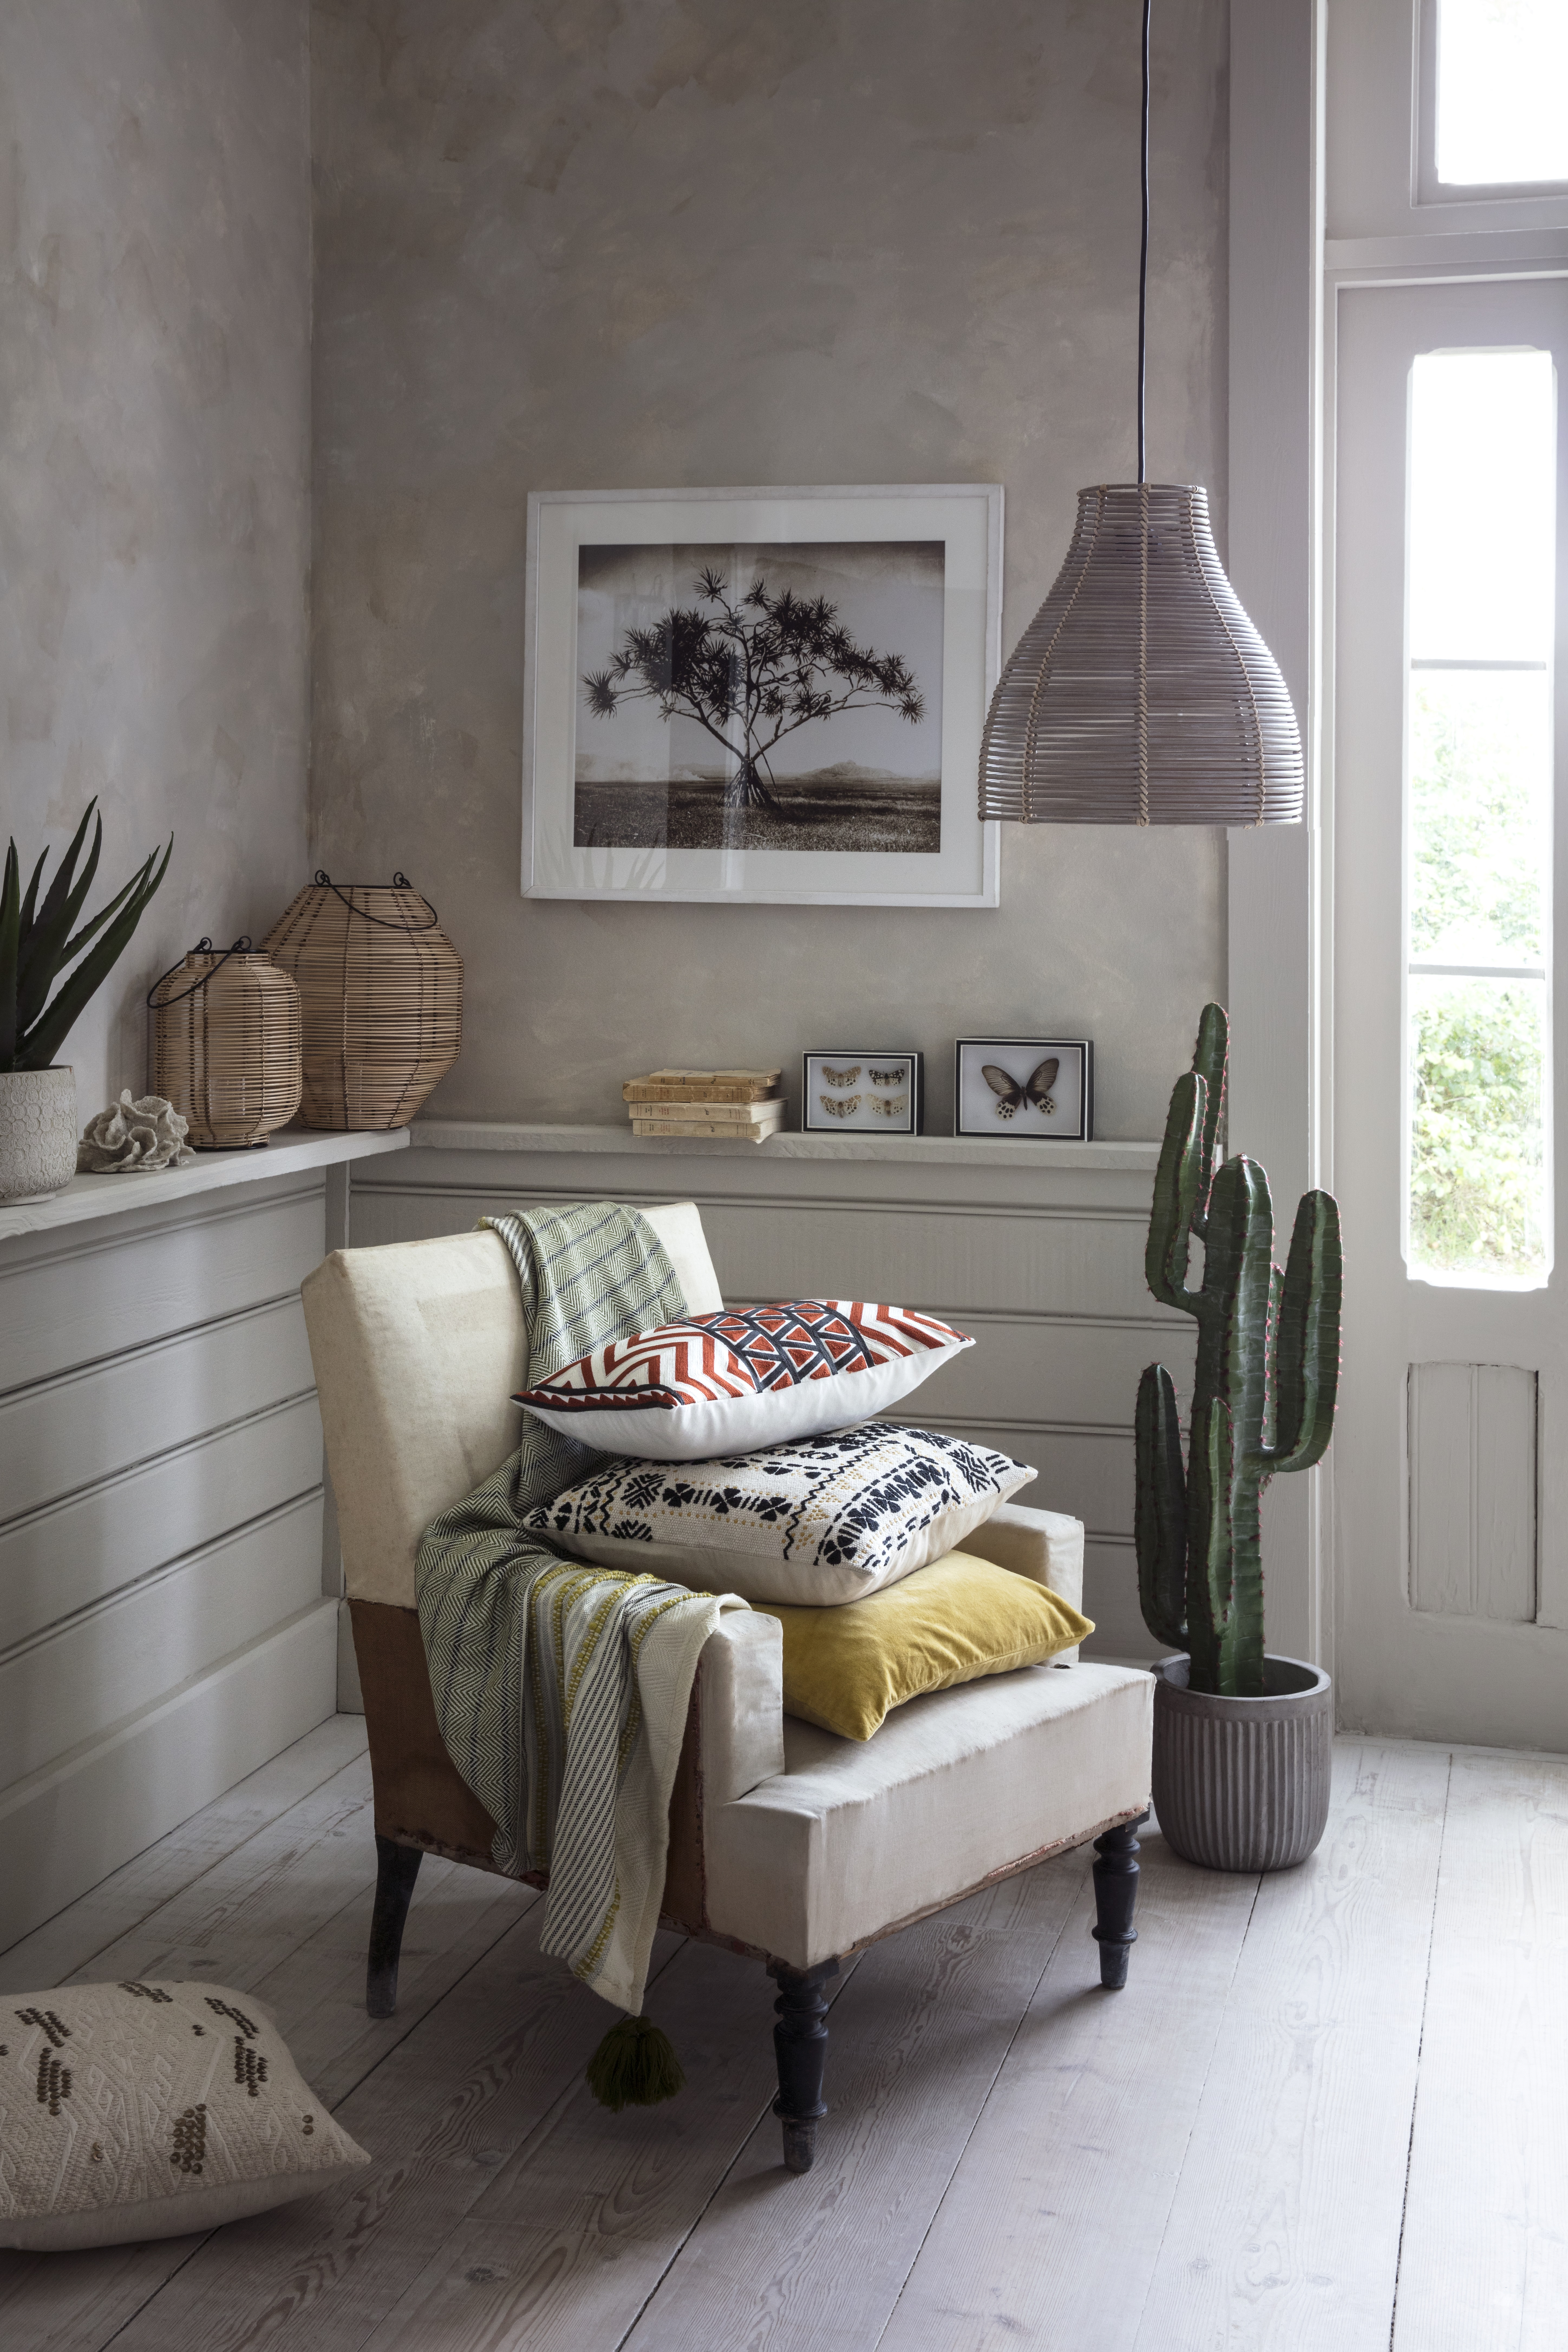 House Of Fraser S New Range Features A Woven Throw Cushions Junipa Baja Planter C Ornament Cane Lanterns Linea Annika Weave Easy Fit